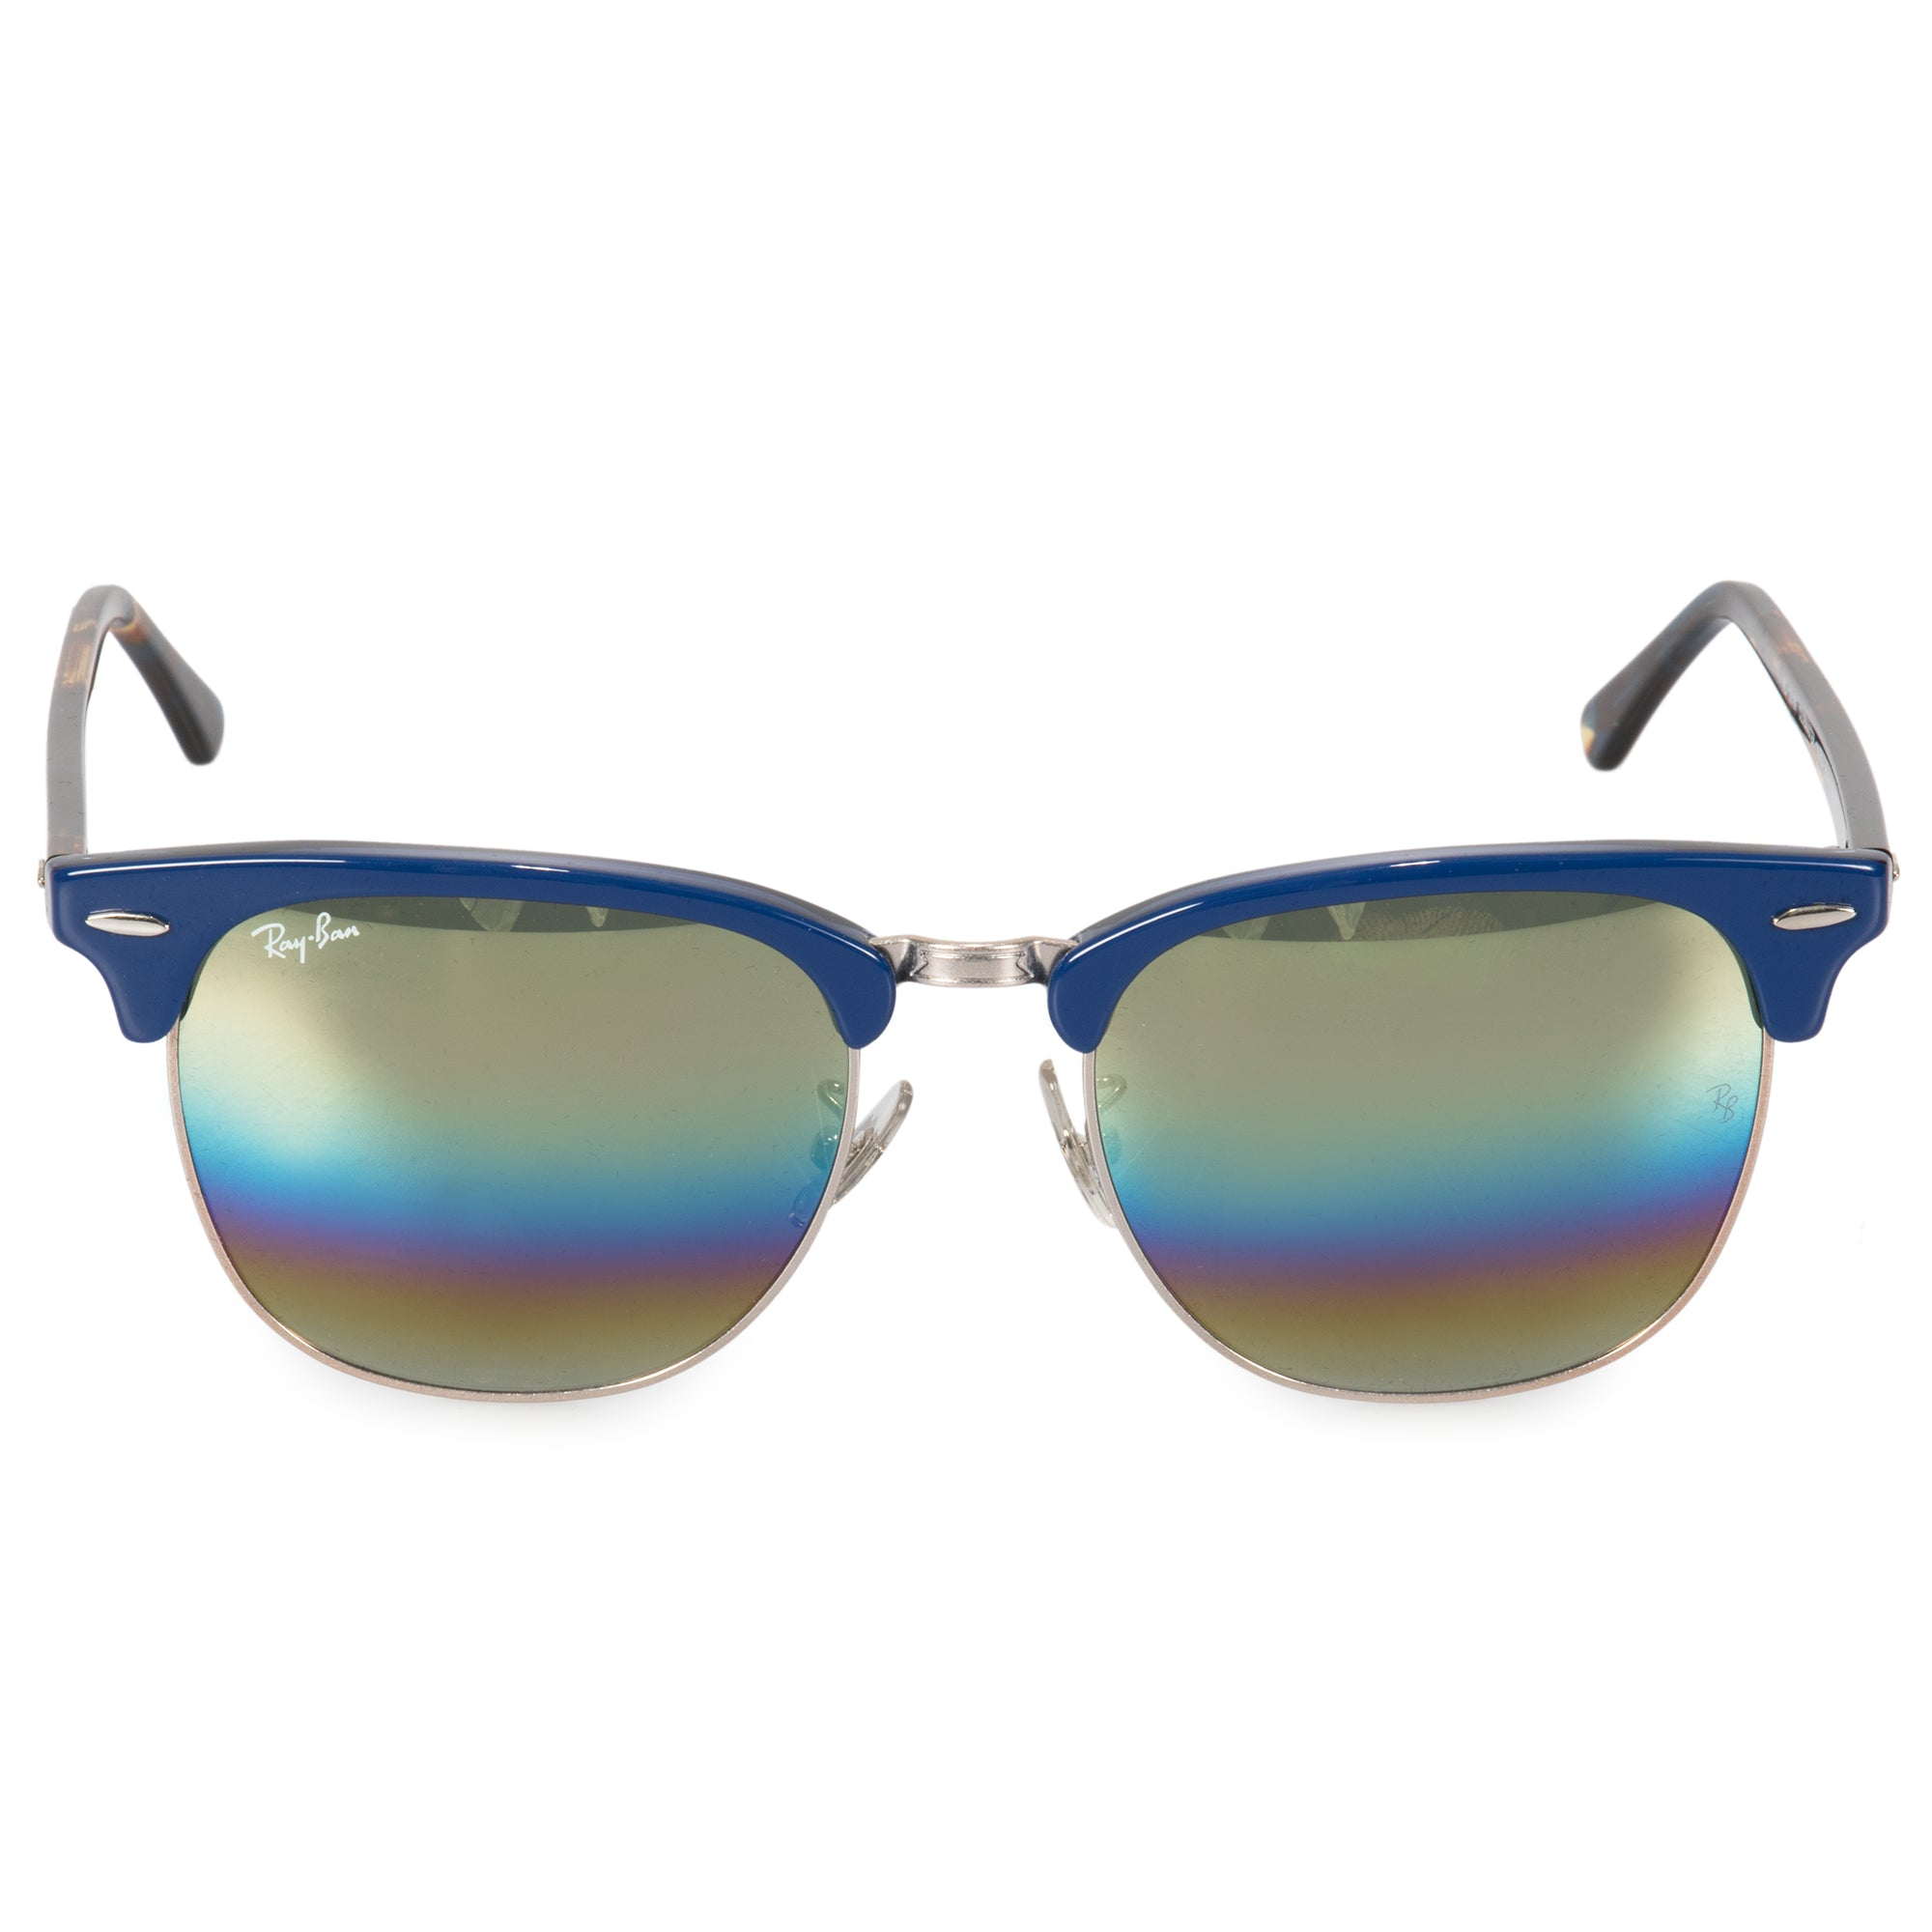 67796637607c Ray Ban Clubmaster Acetate And Metal Sunglasses – Southern ...